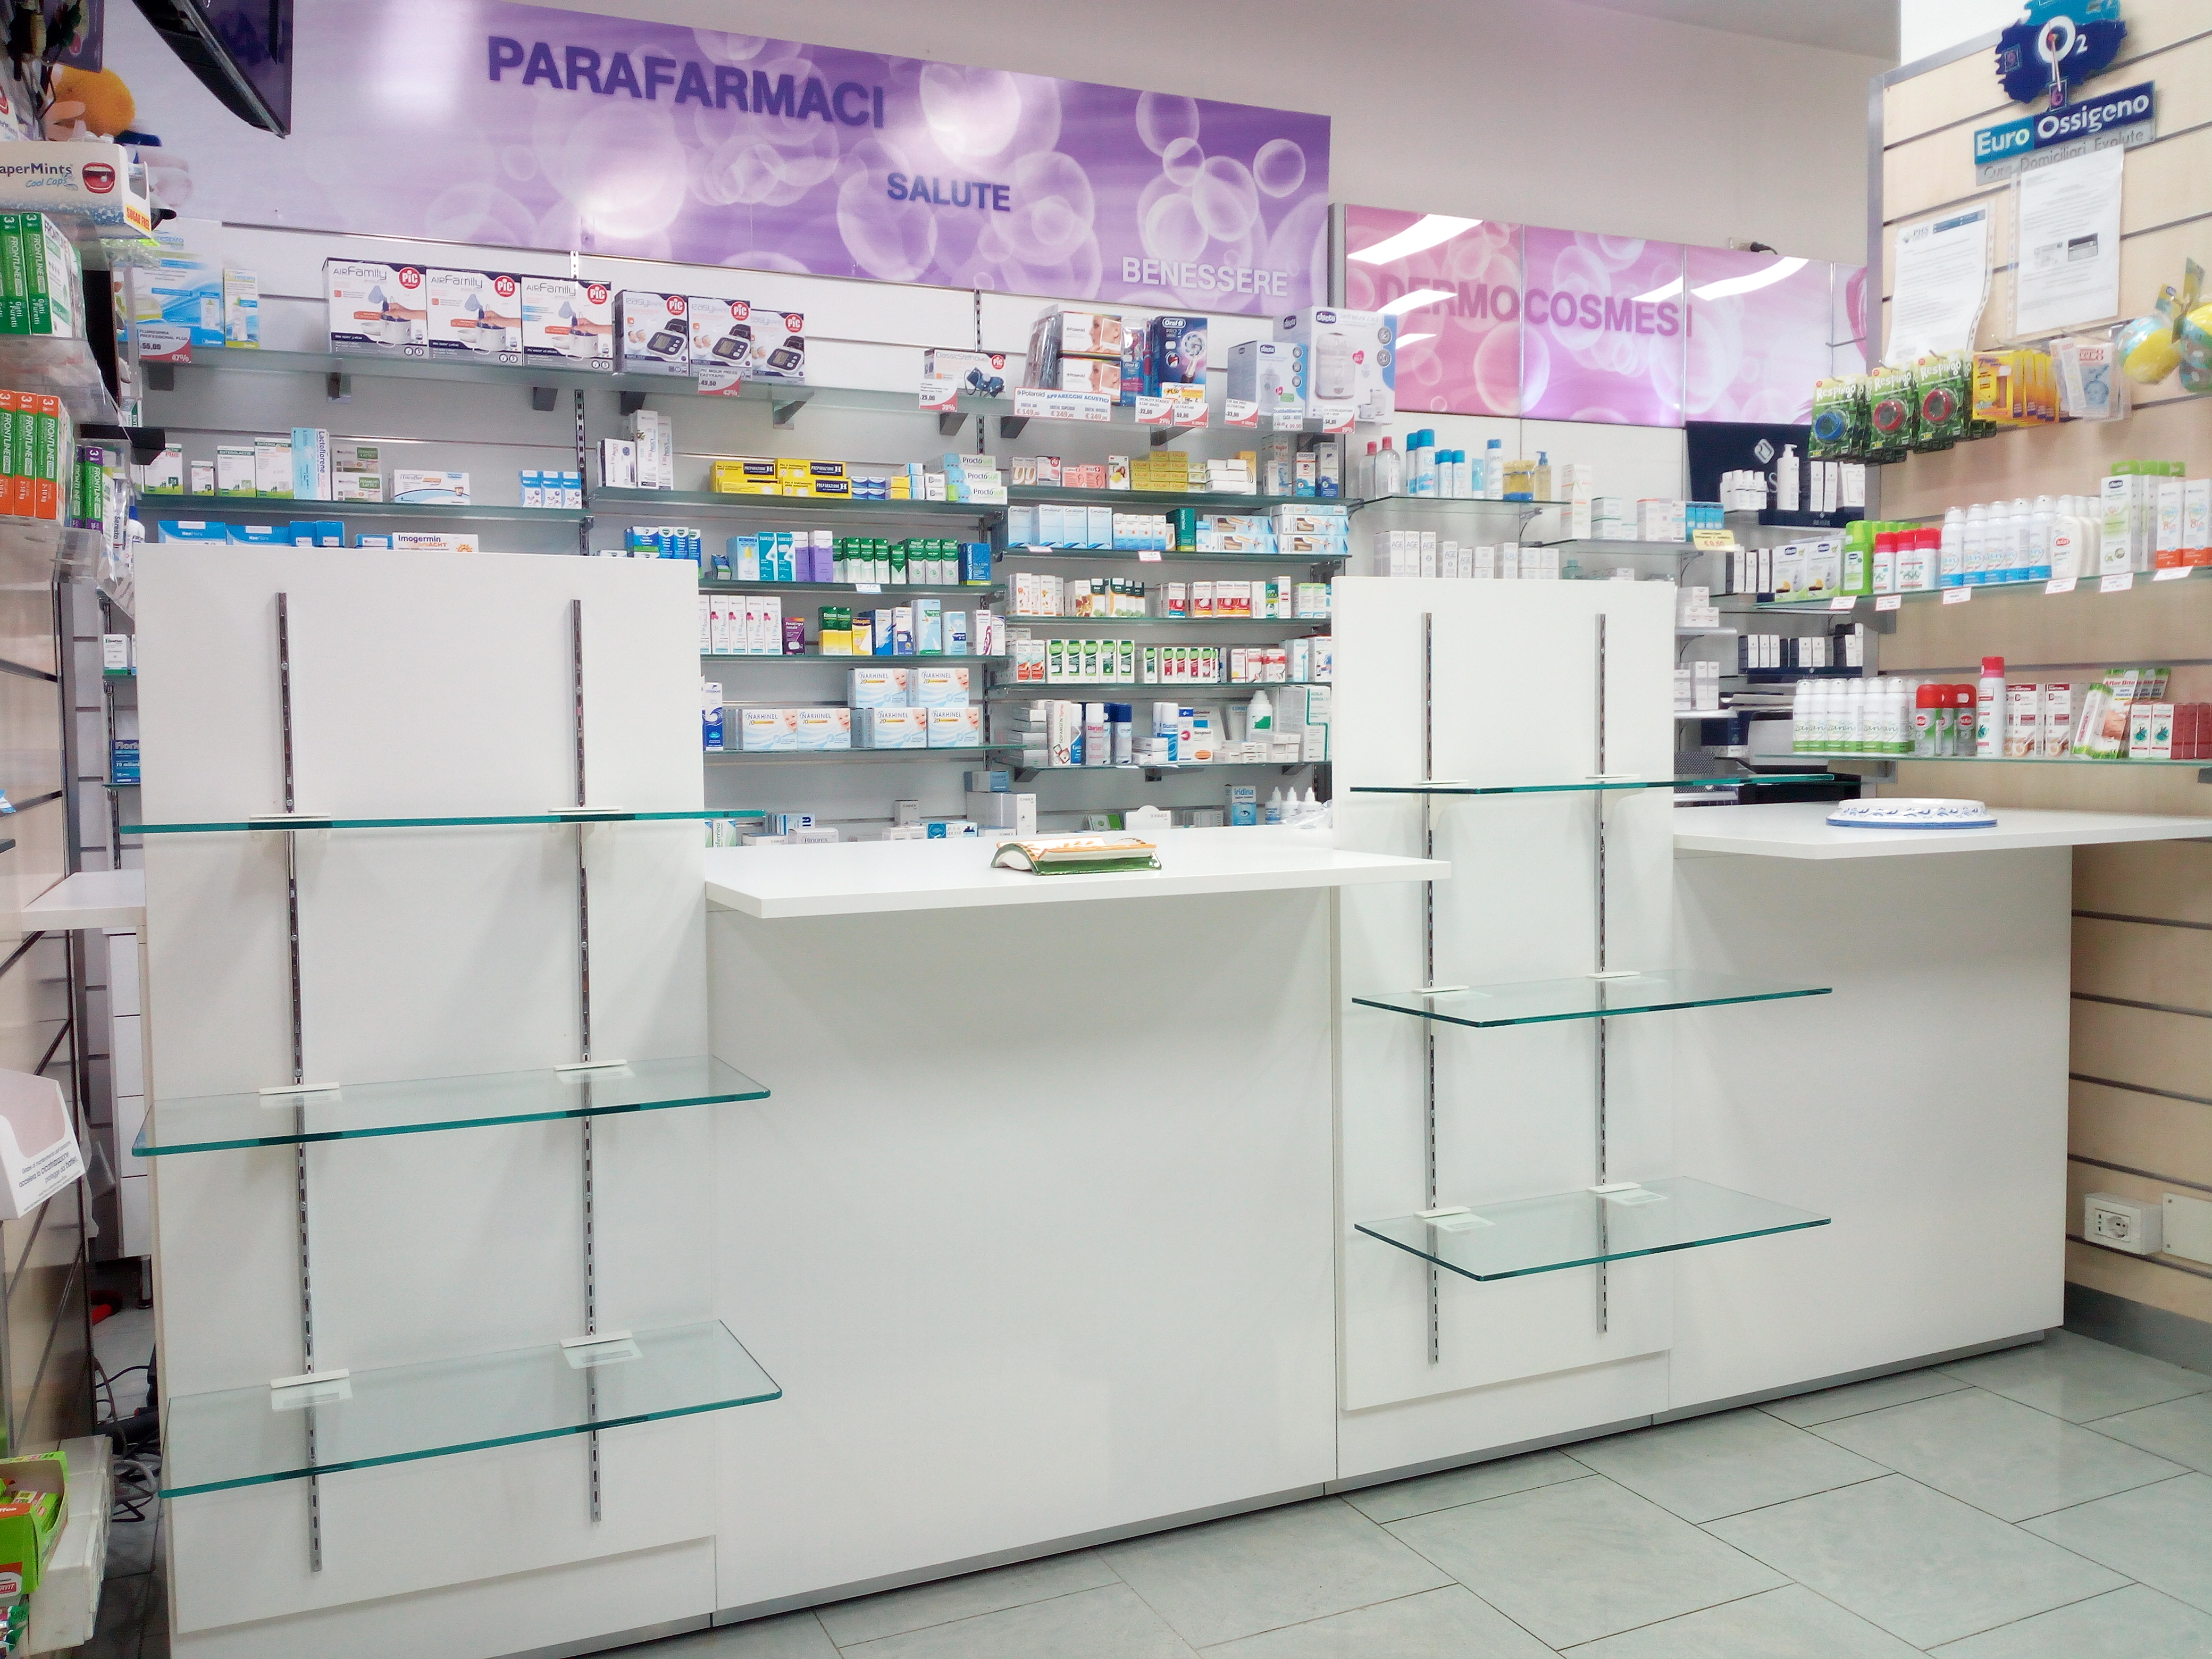 Mobile espositore farmaci, banco cassa